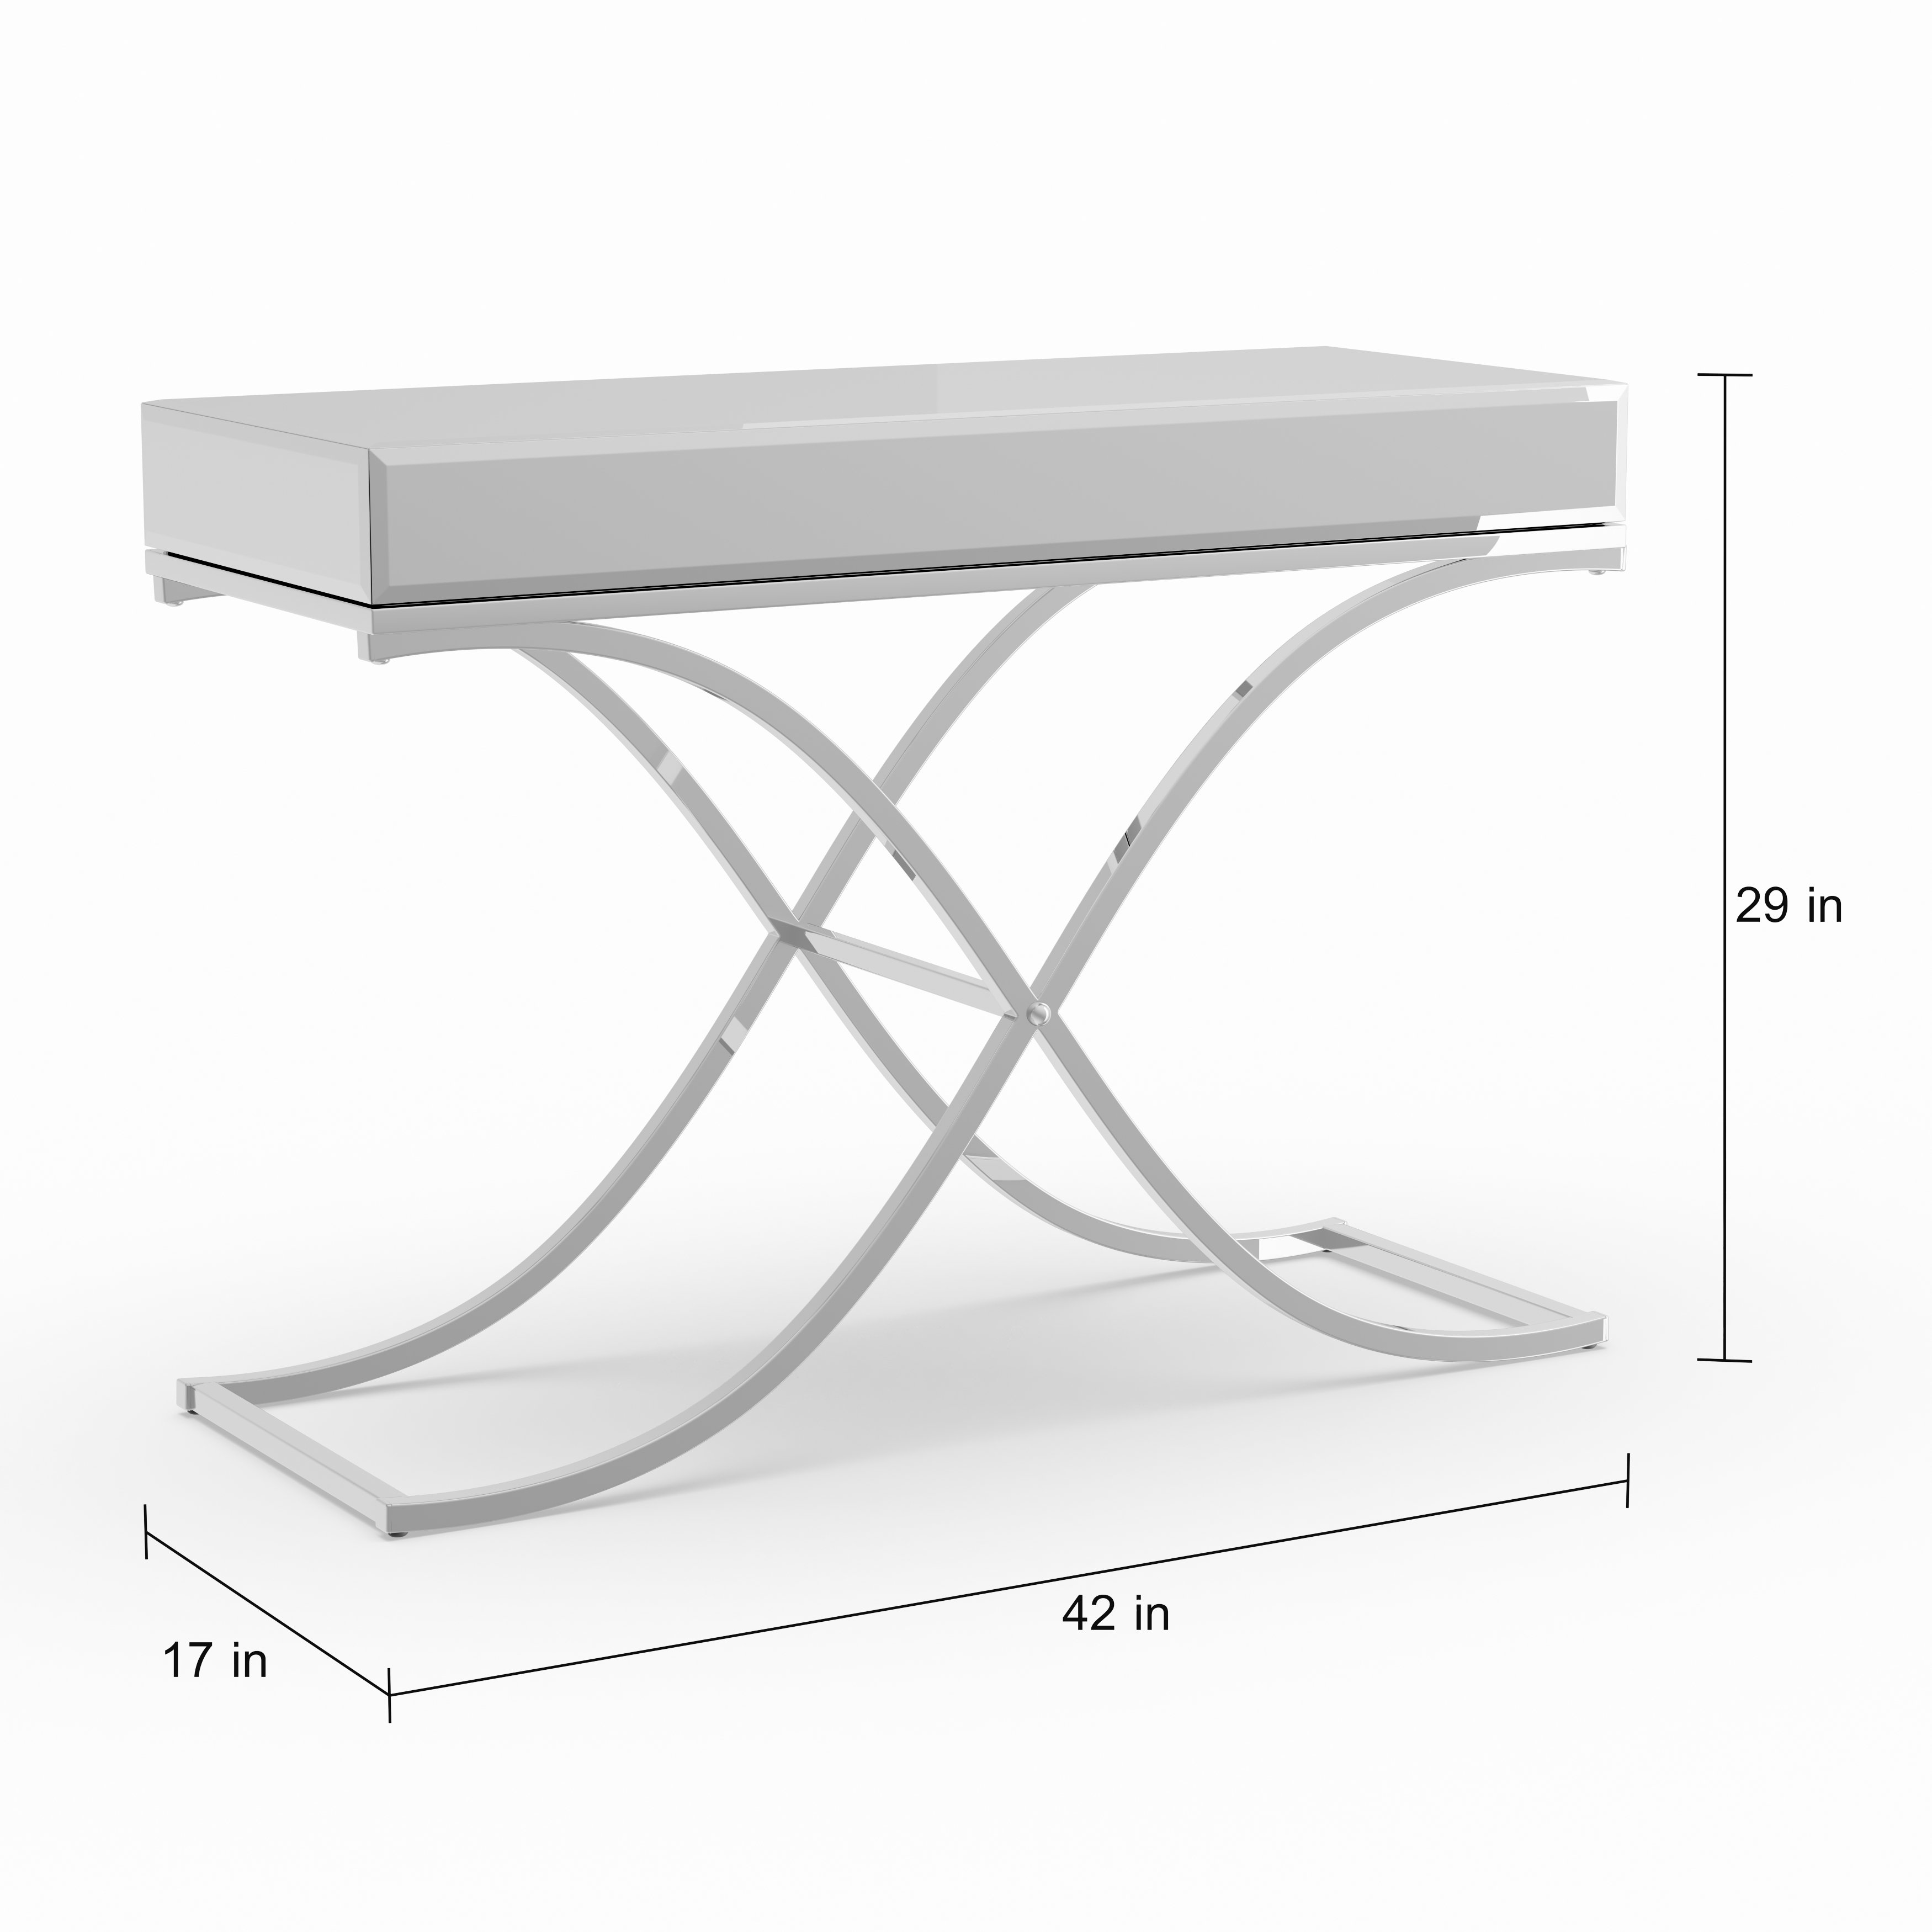 silver orchid olivia chrome mirrored sofa console table free metal glass accent with shelf shipping today cupboard decoration small living room decorating ideas battery operated